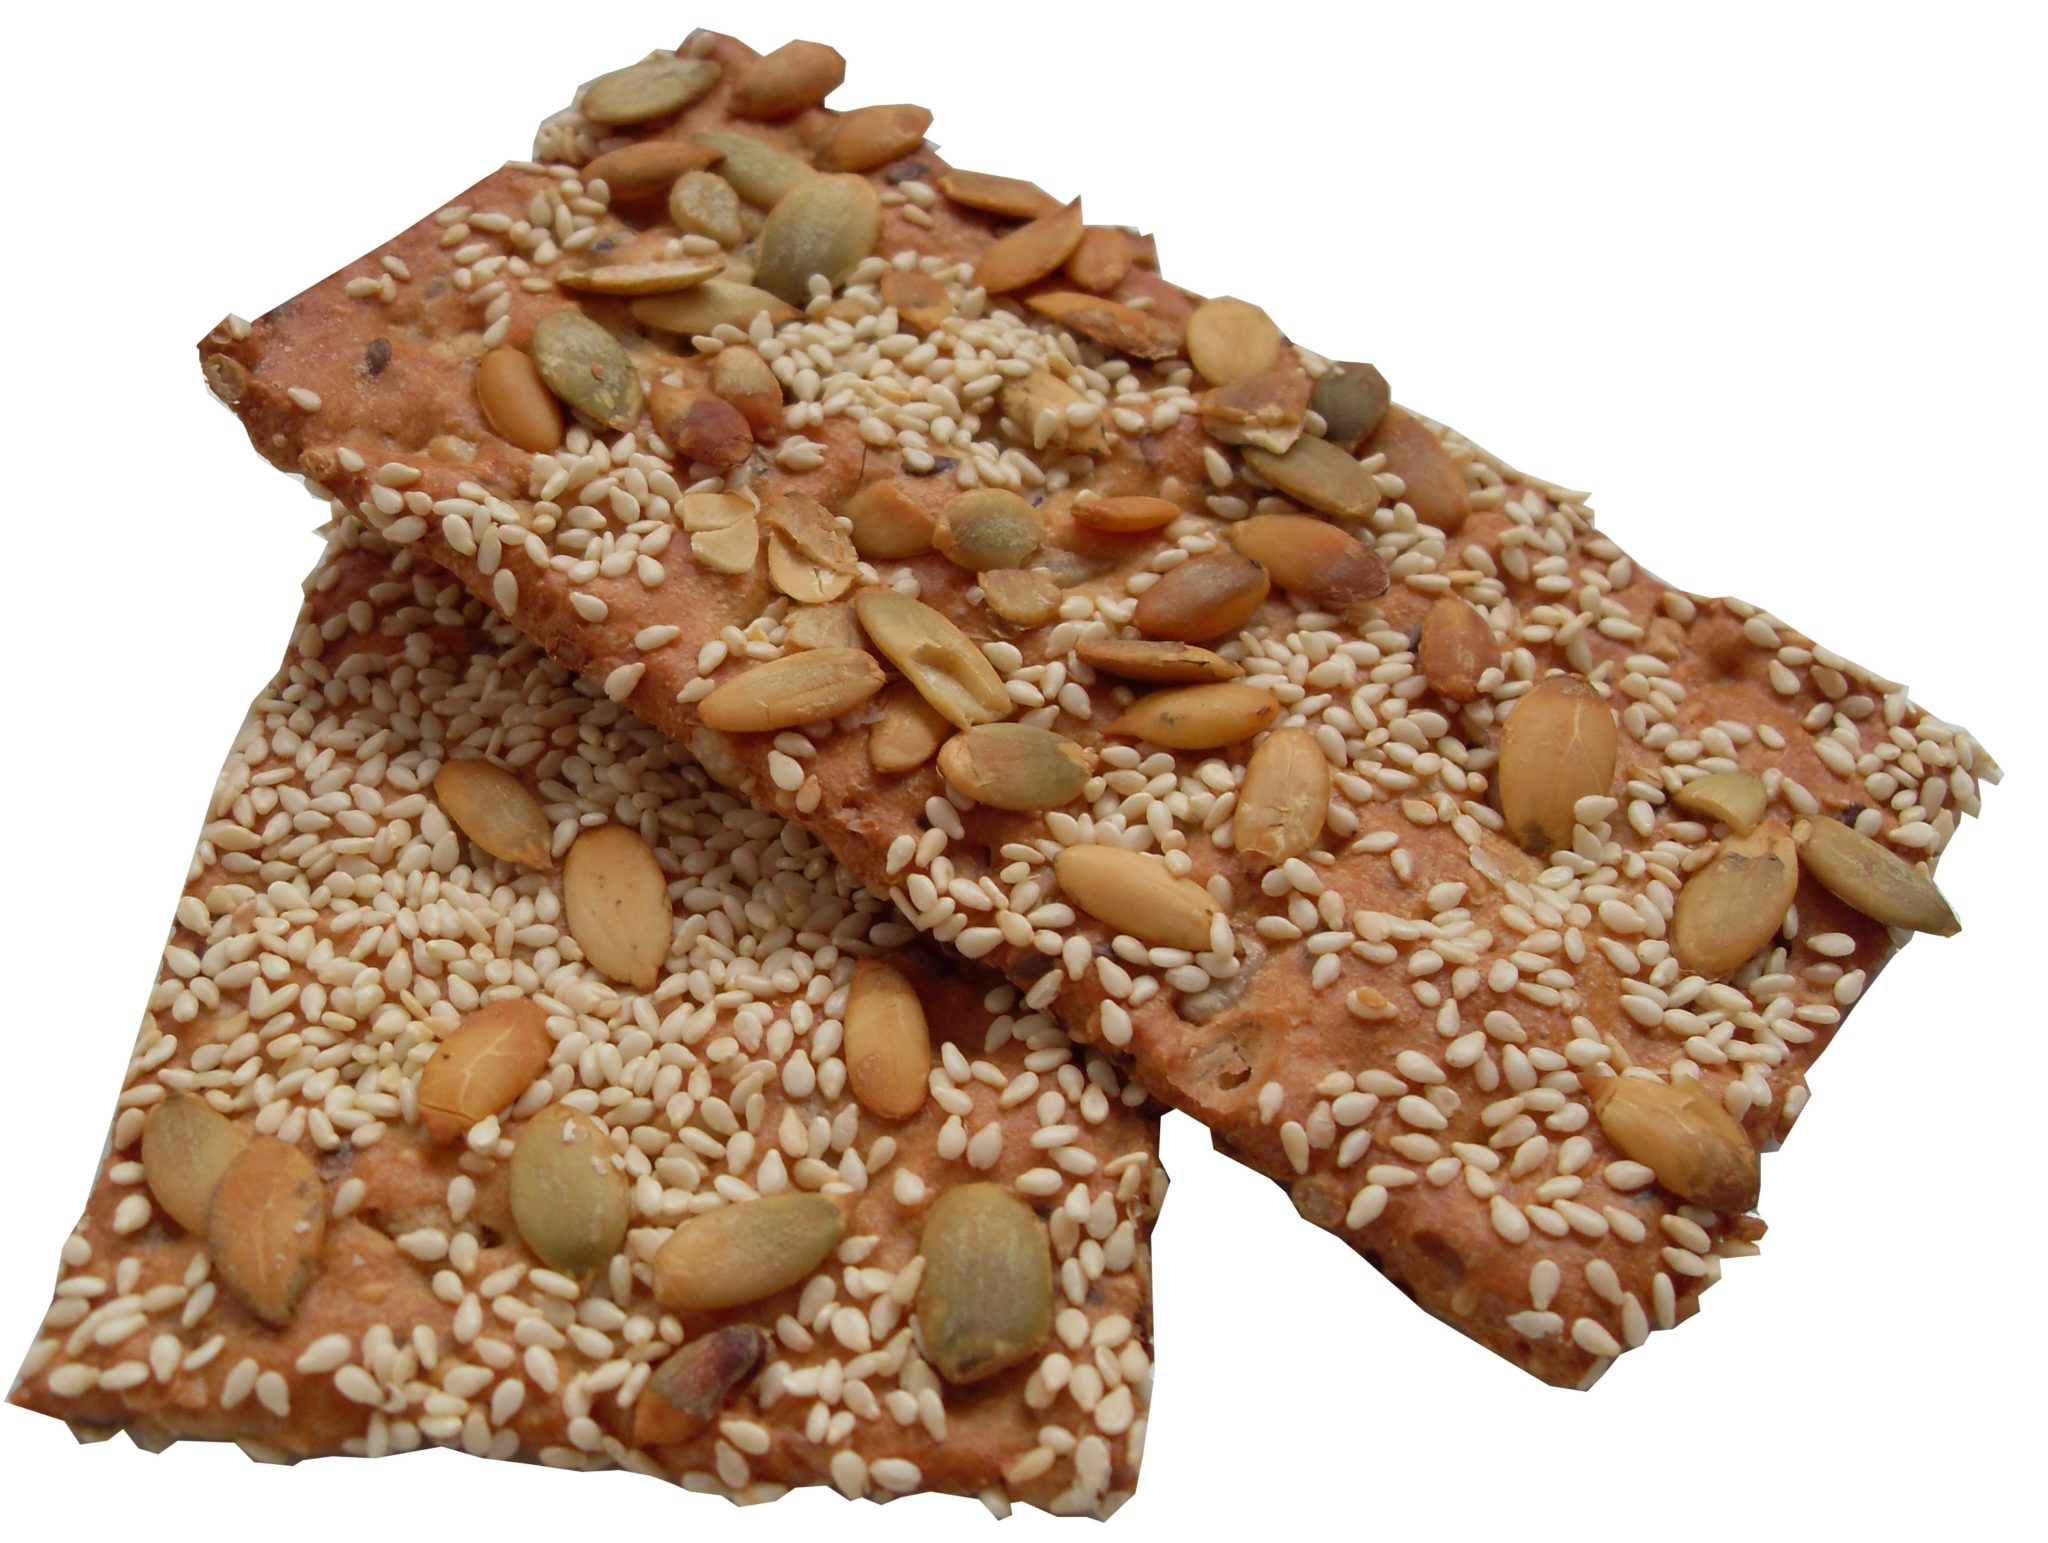 was-ist-ein-low-carb-brot